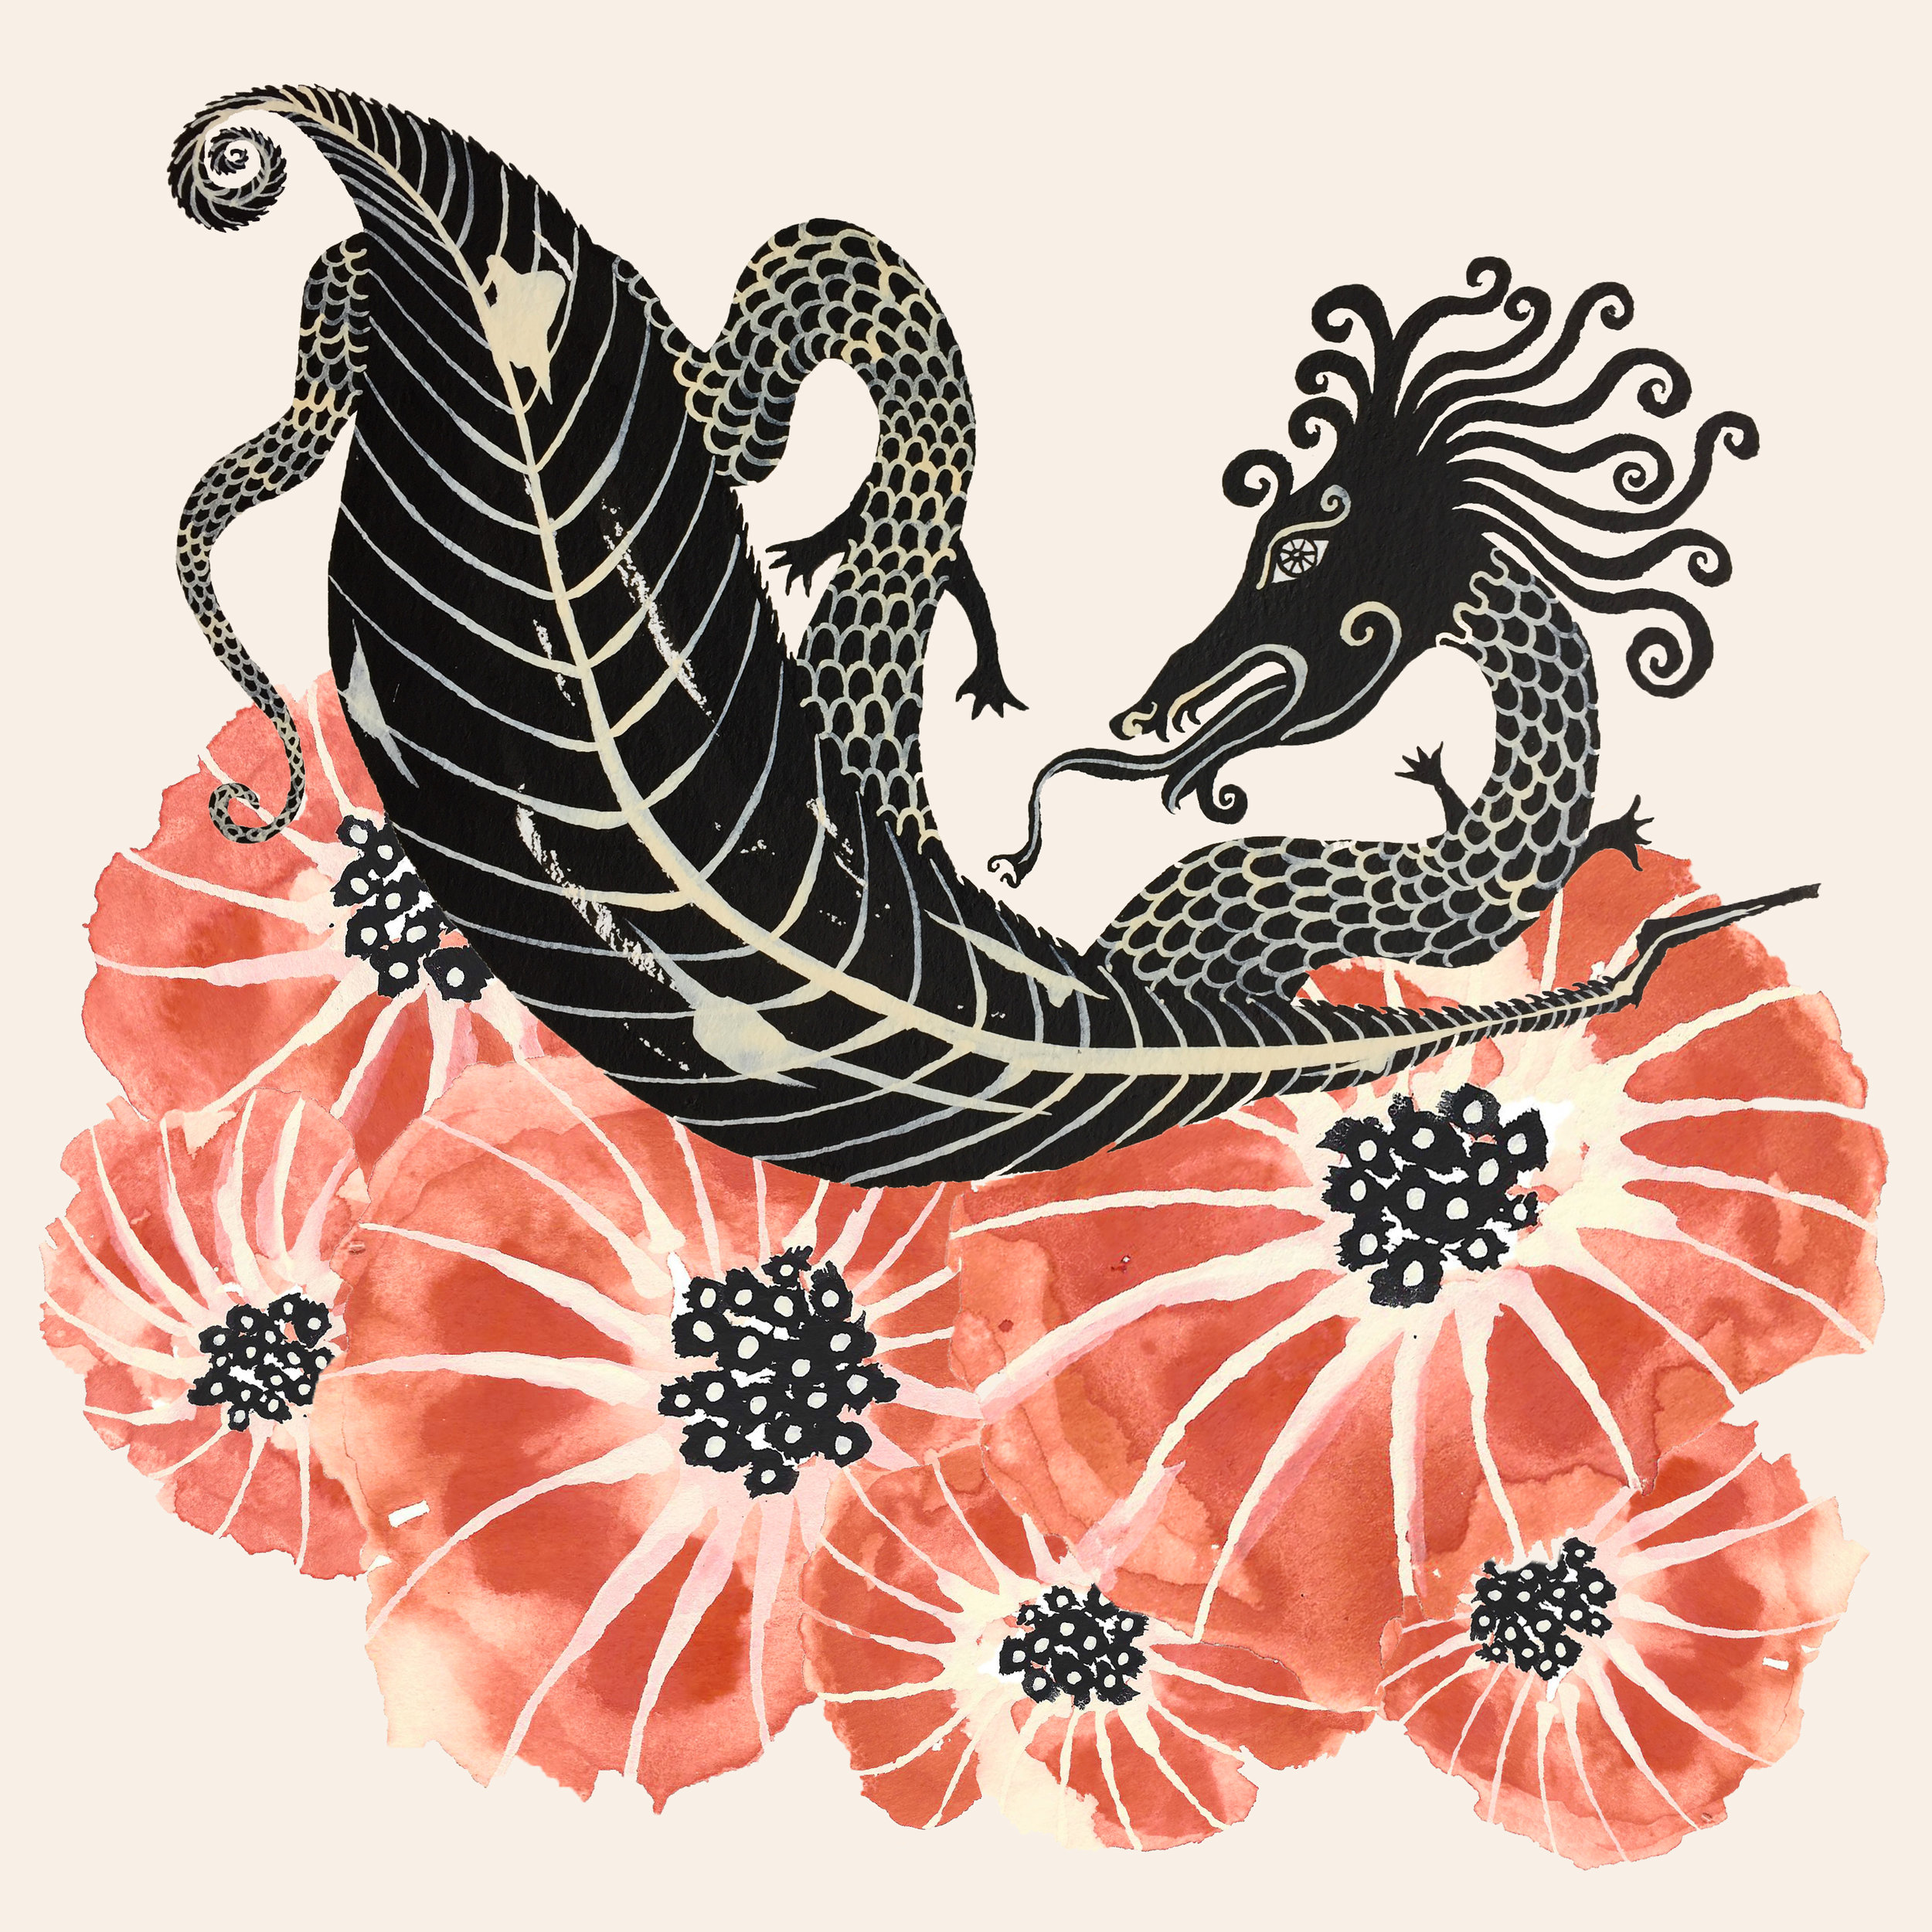 dragon, leaf, and poppies_port.jpg